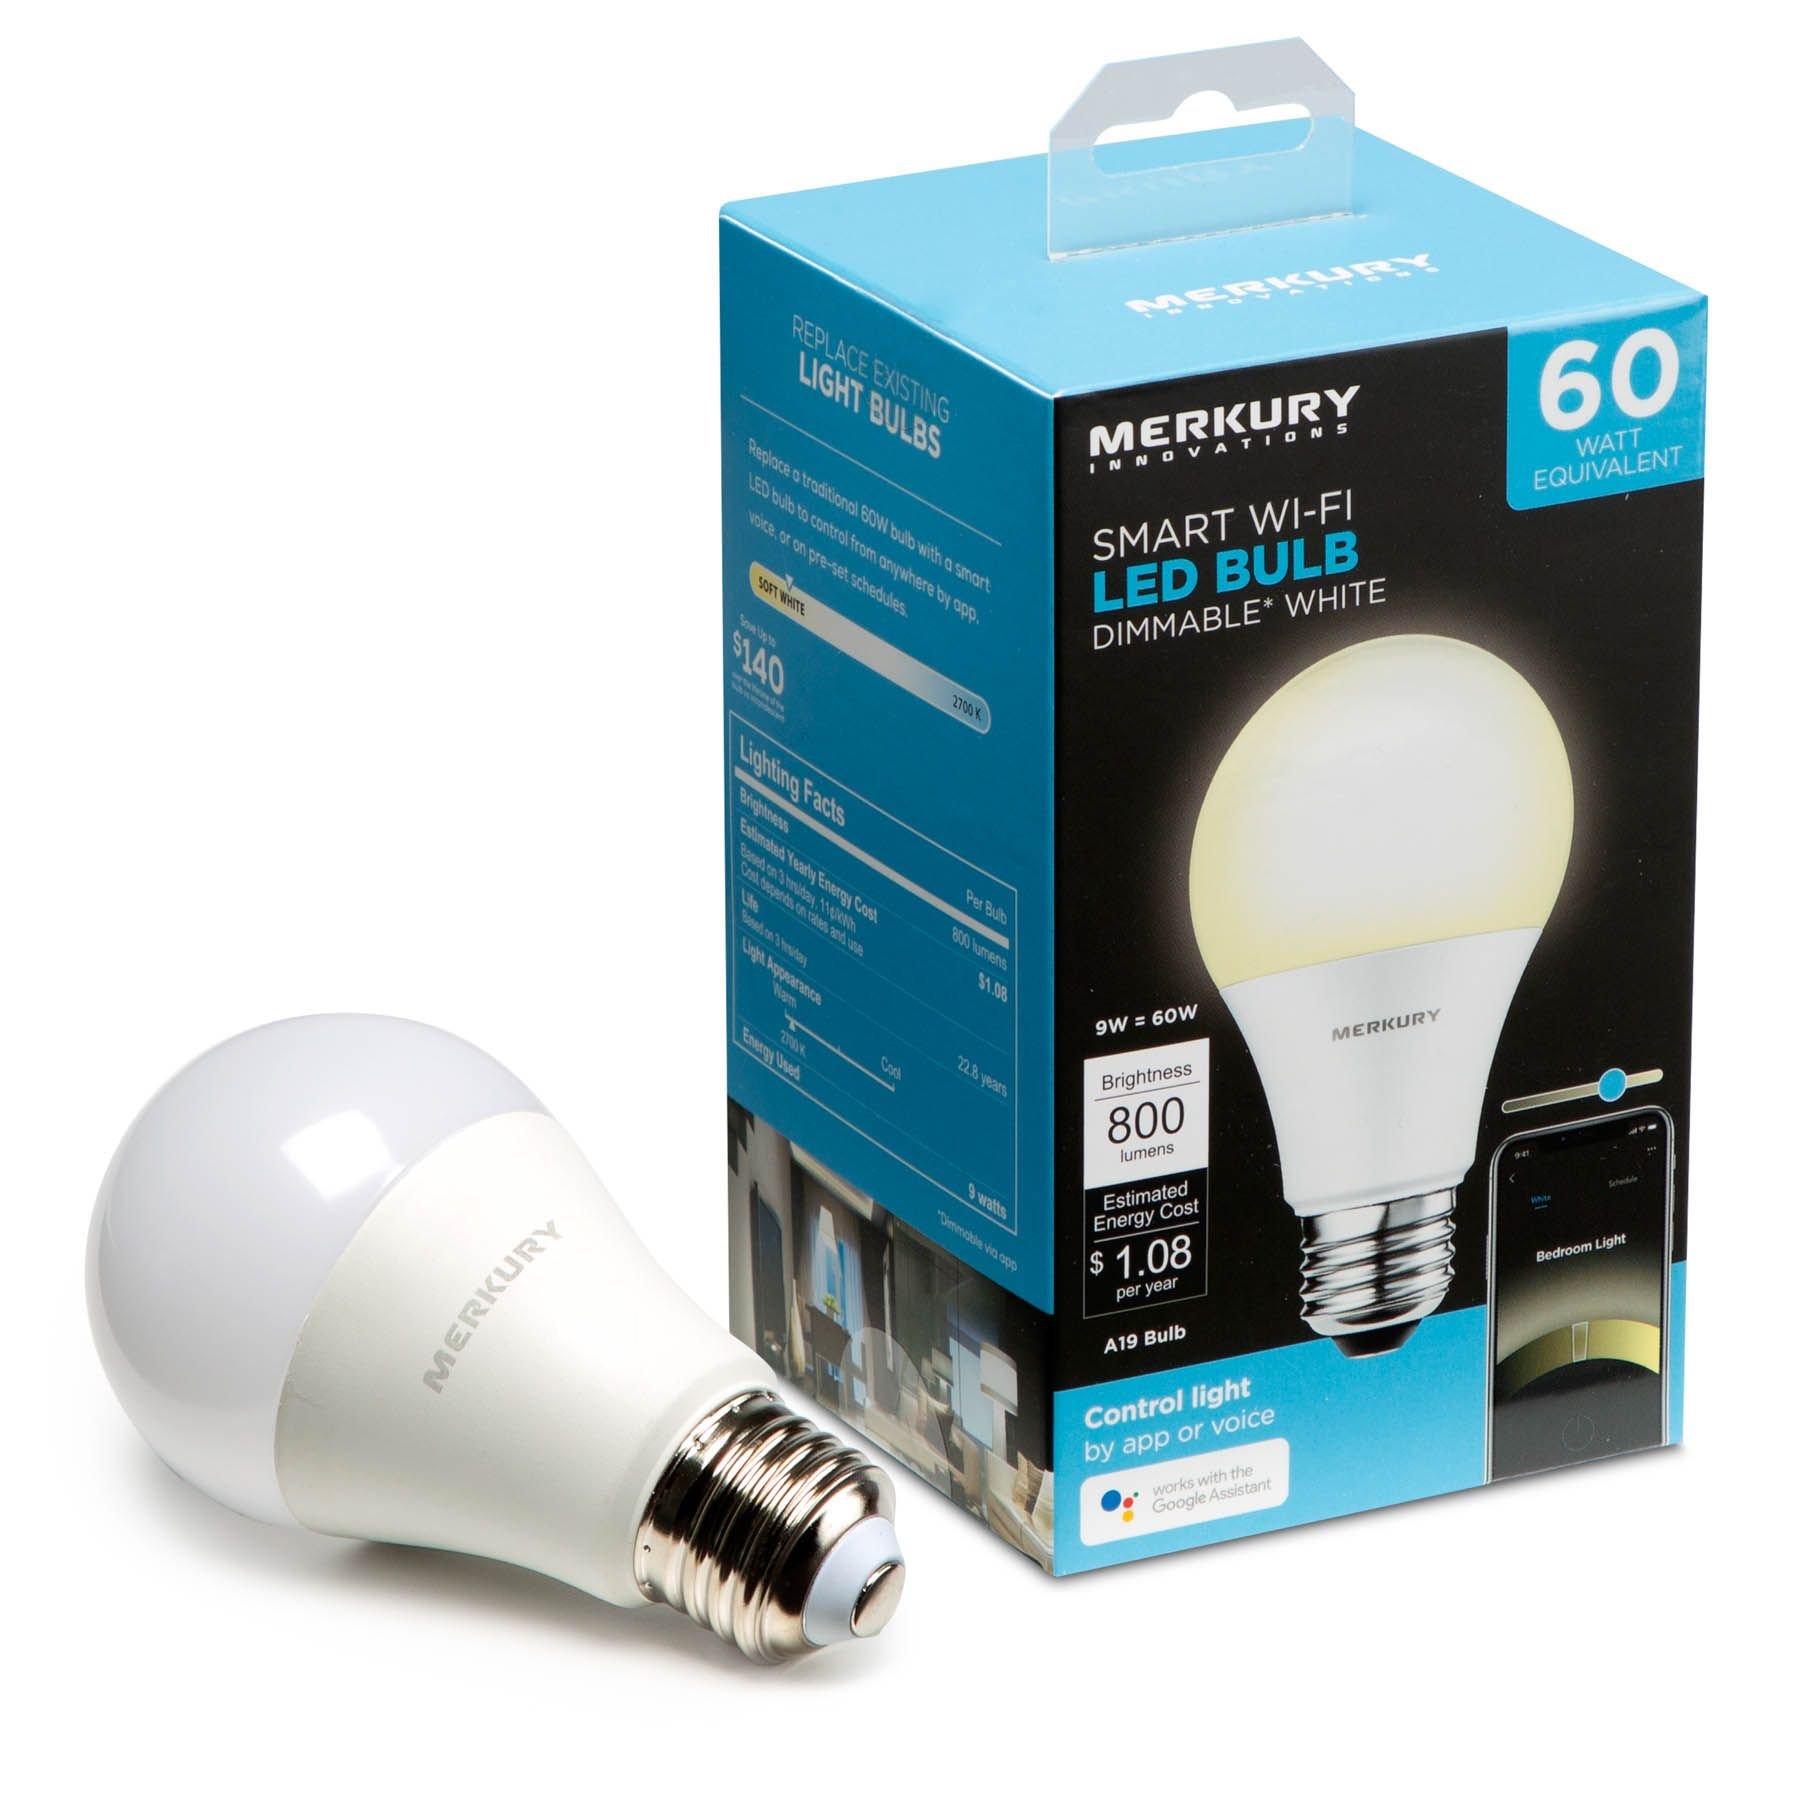 Merkury Innovations A19 Smart Light Bulb 60w Dimmable White Led Requires 2 4ghz Wifi 1 Pack Walmart Com Smart Light Bulbs Smart Lighting Light Bulb